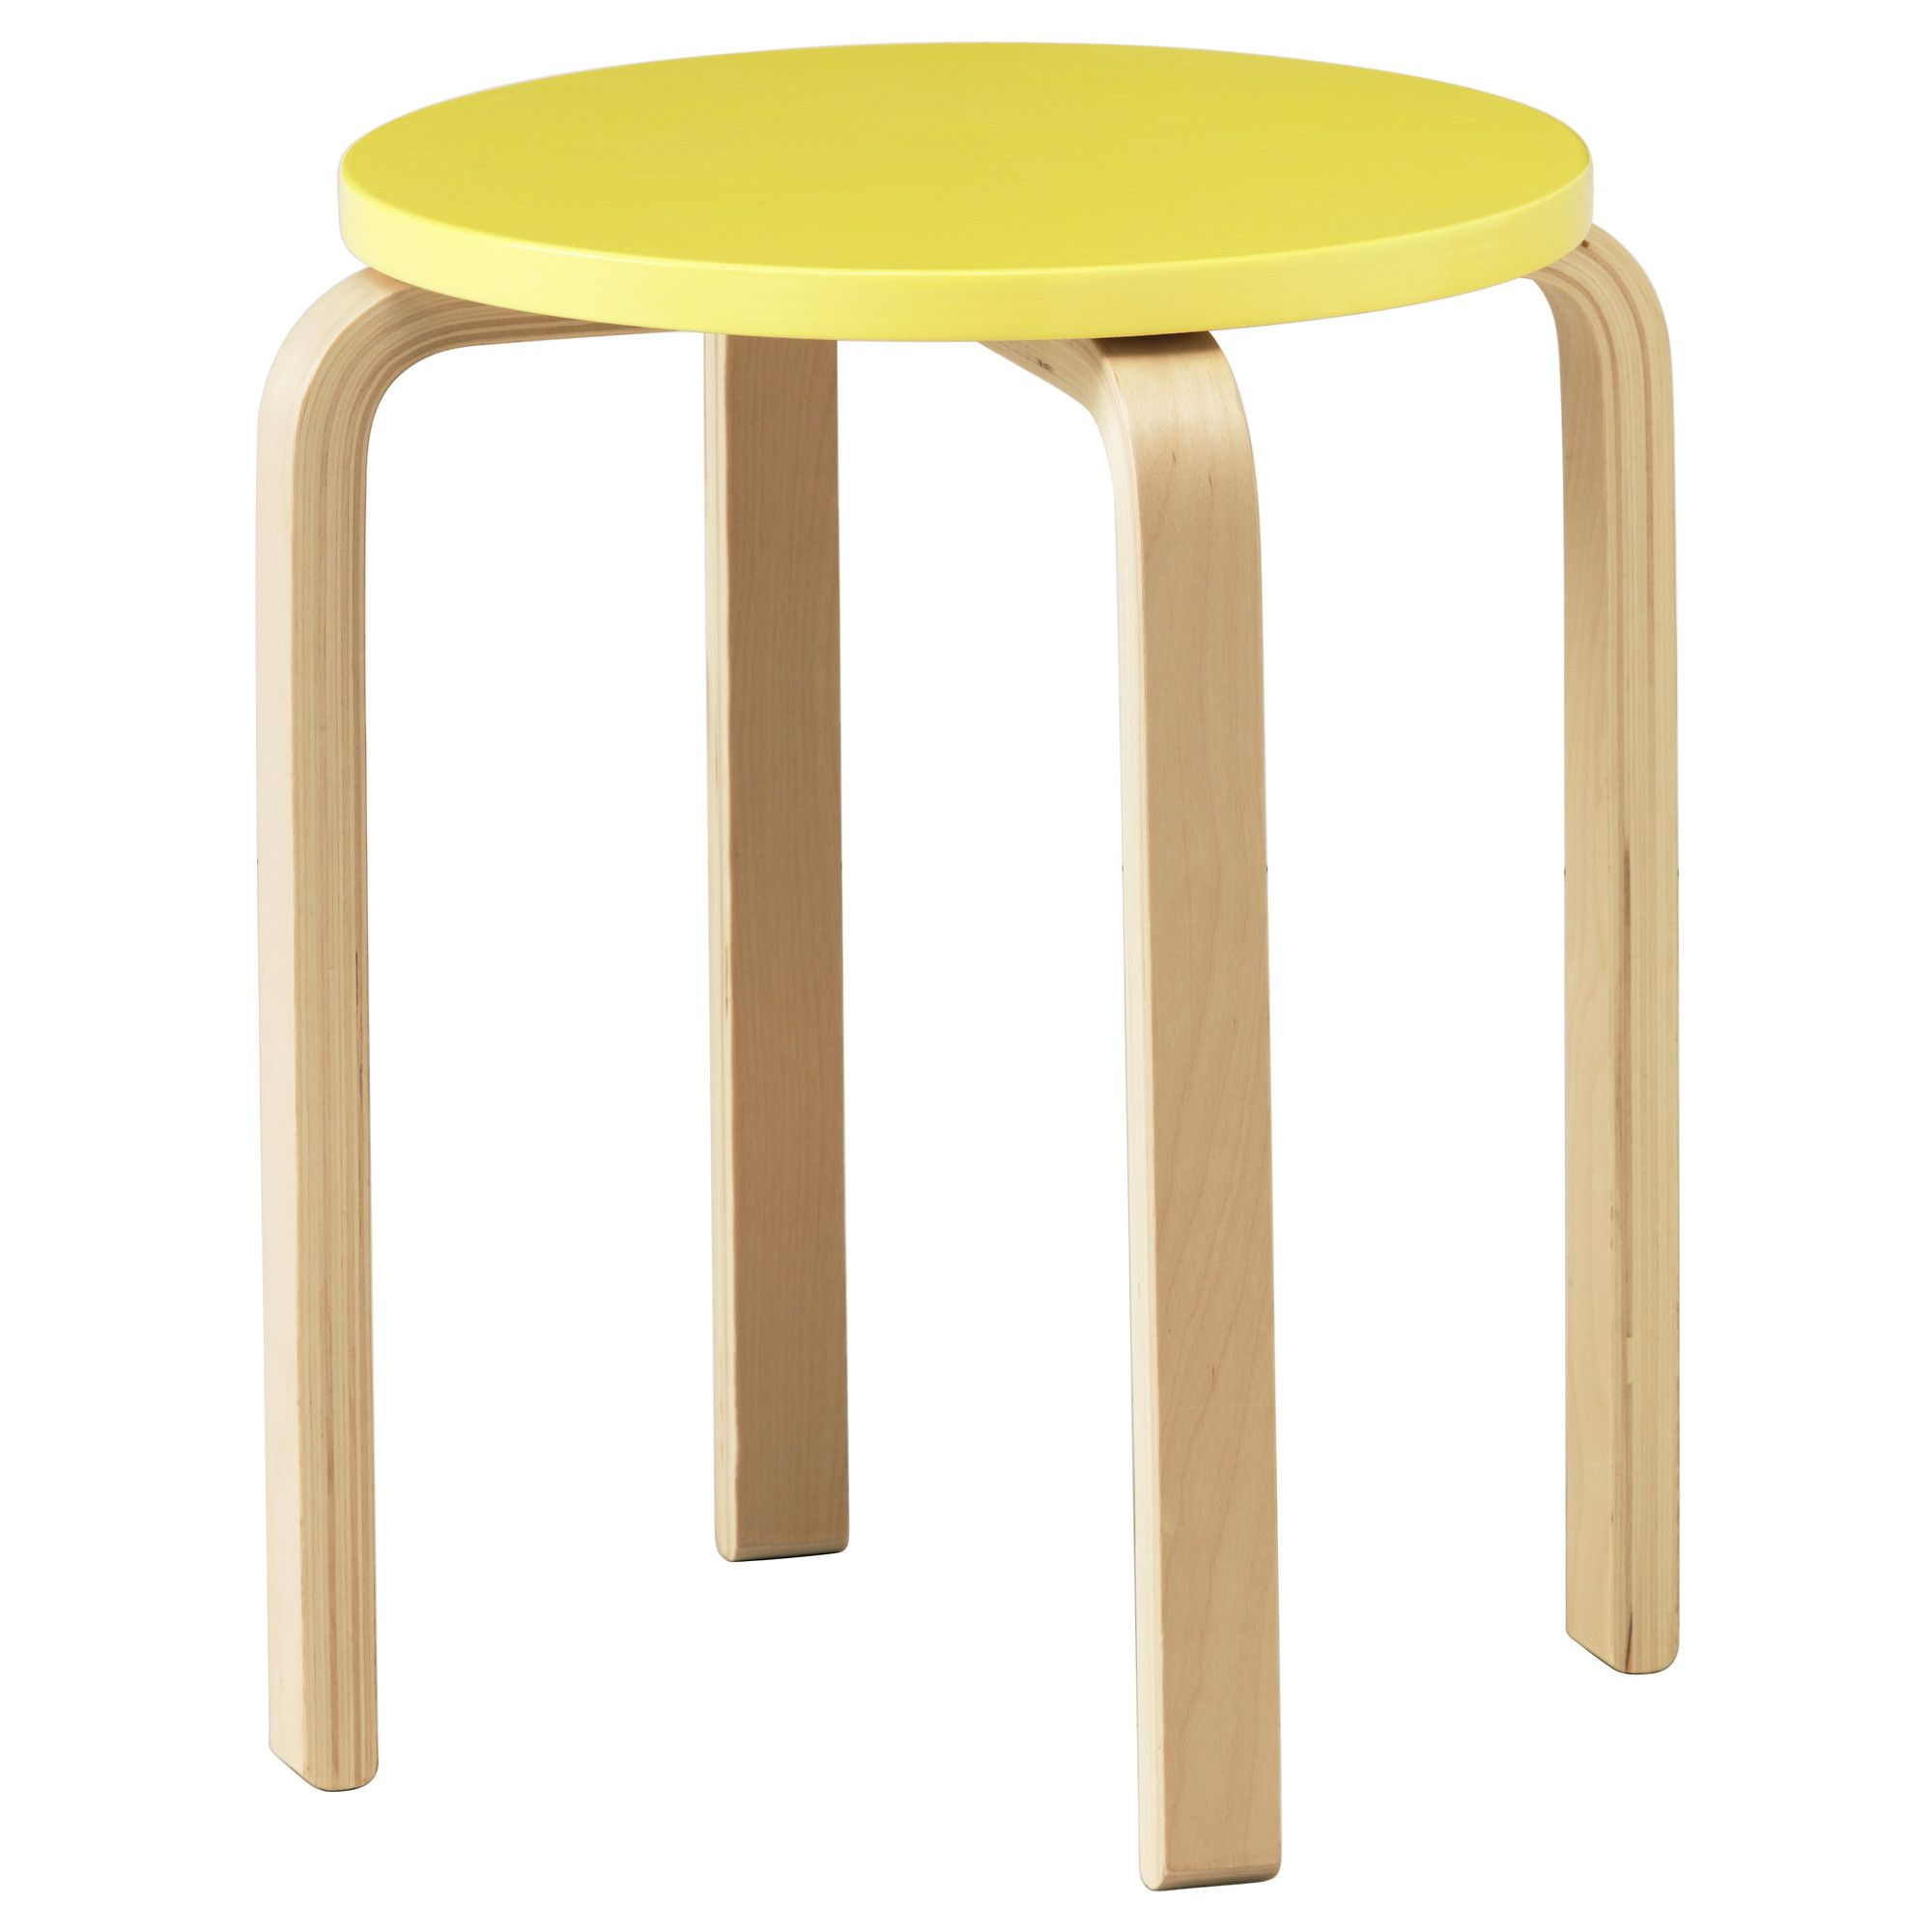 36 Inch Bar Stools Ikea Ikea Frosta Stool The Stool Can Be Stacked So You Can